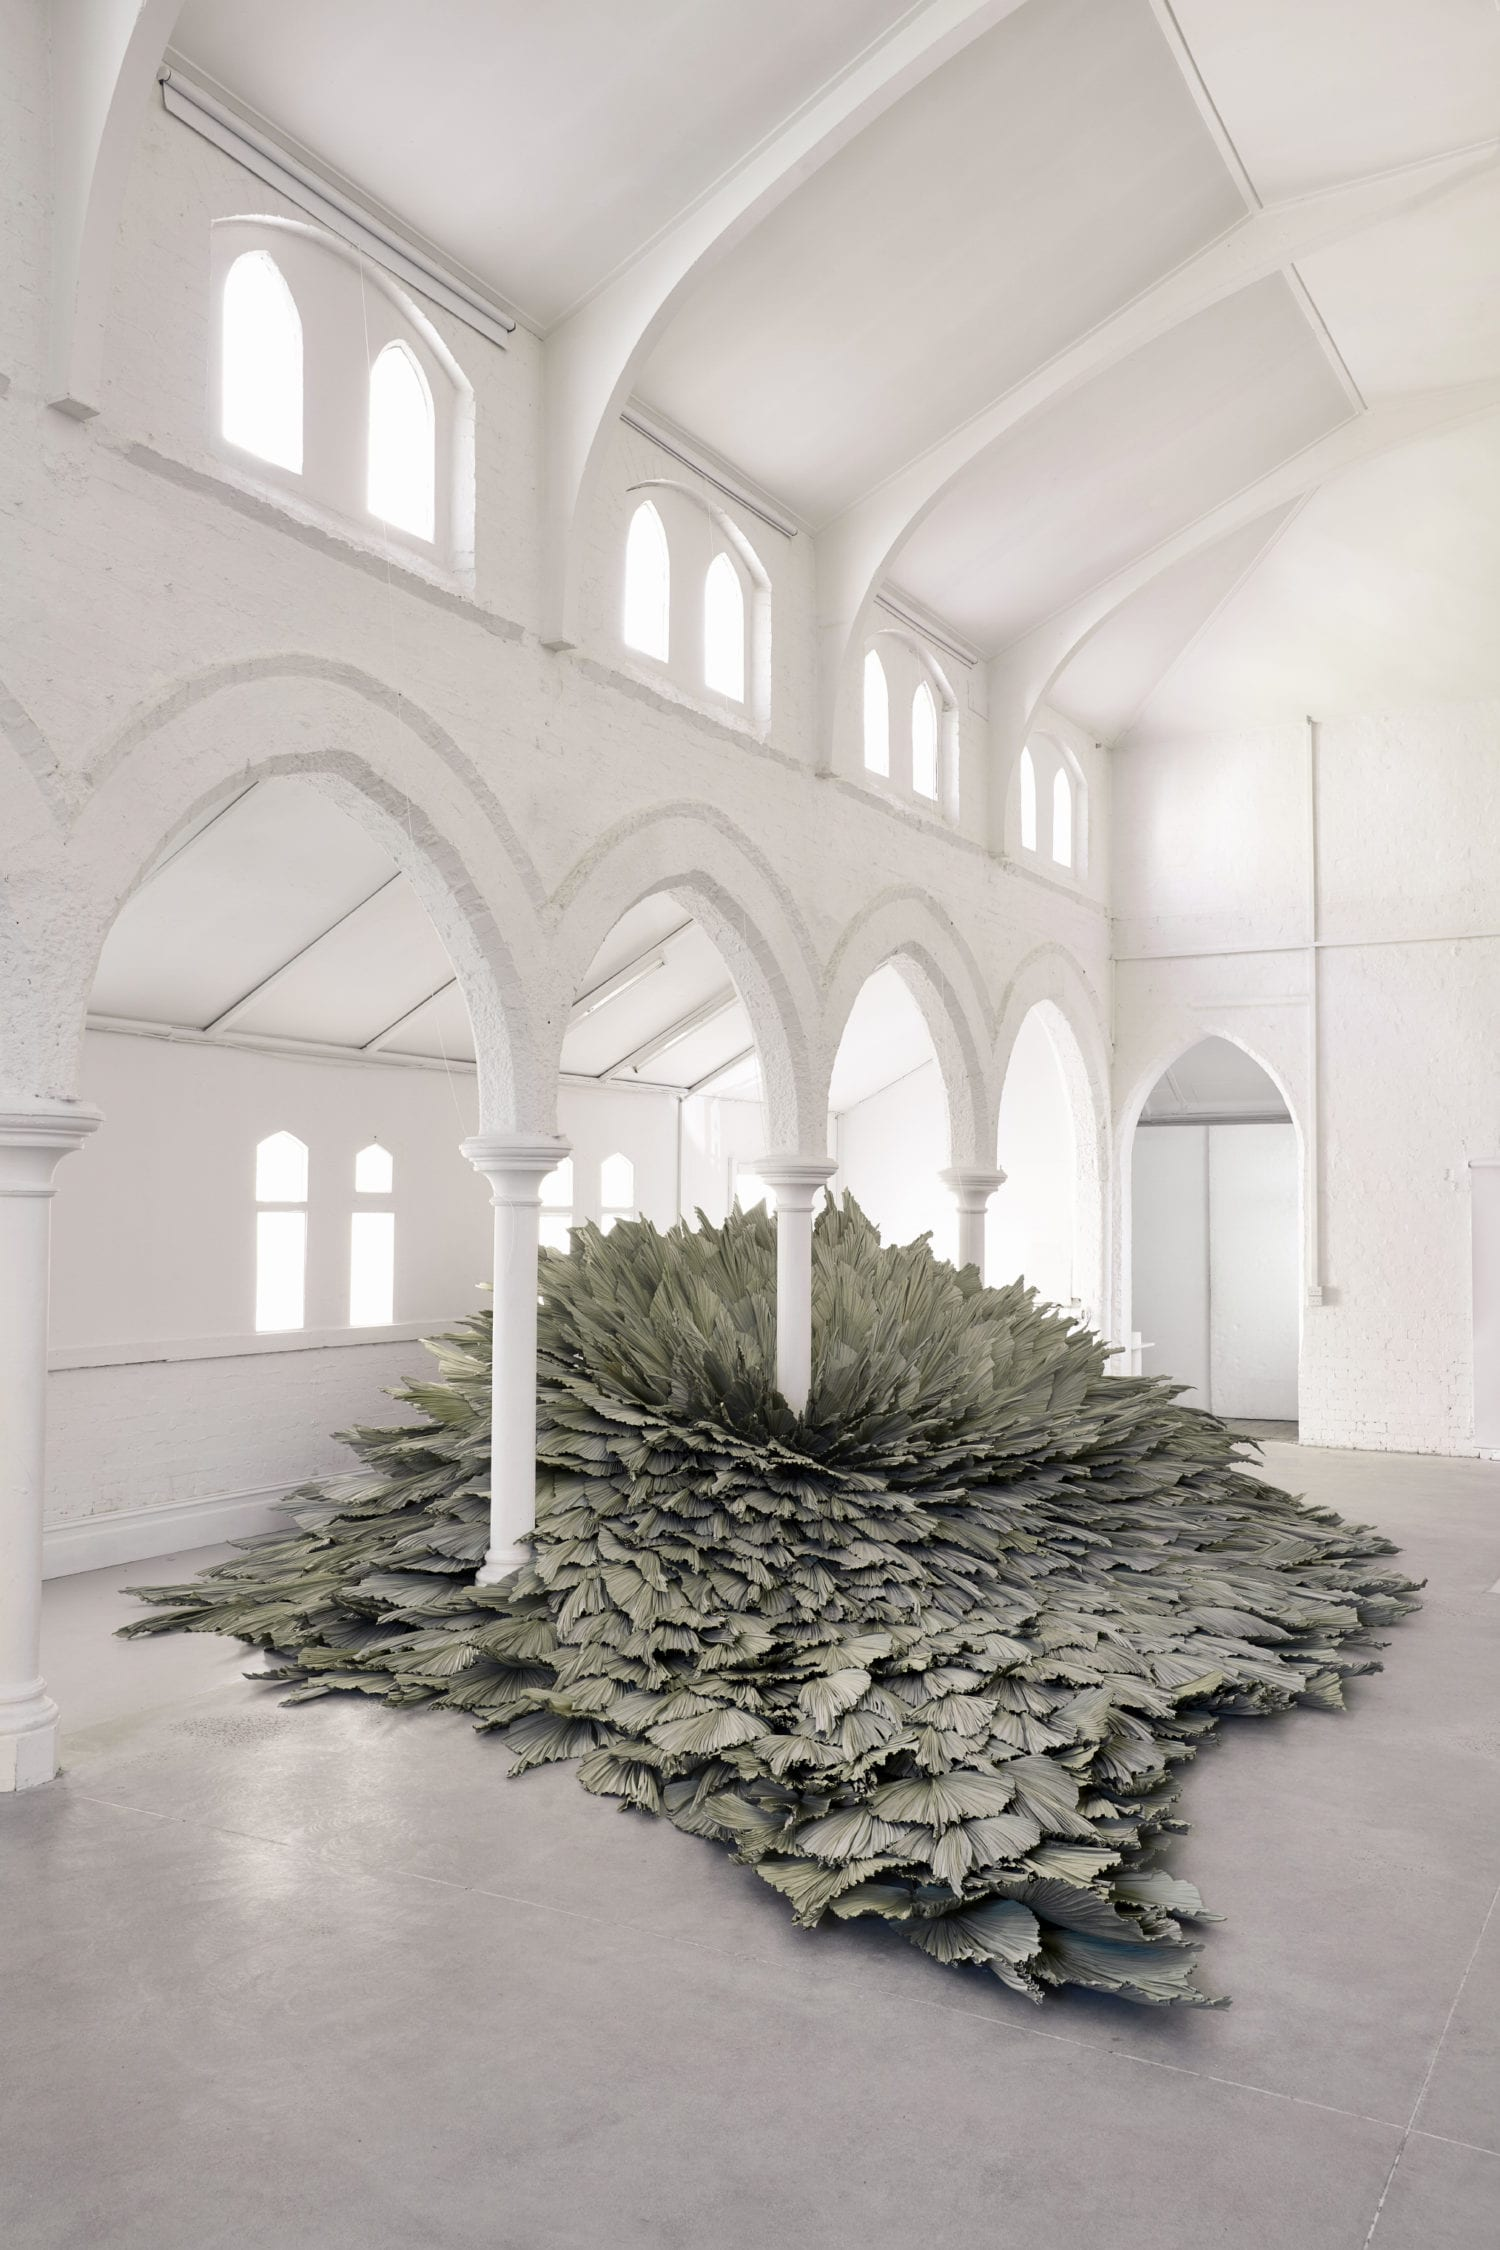 Proximity Botanical Installation by Wona Bae & Charlie Lawler of Loose Leaf.